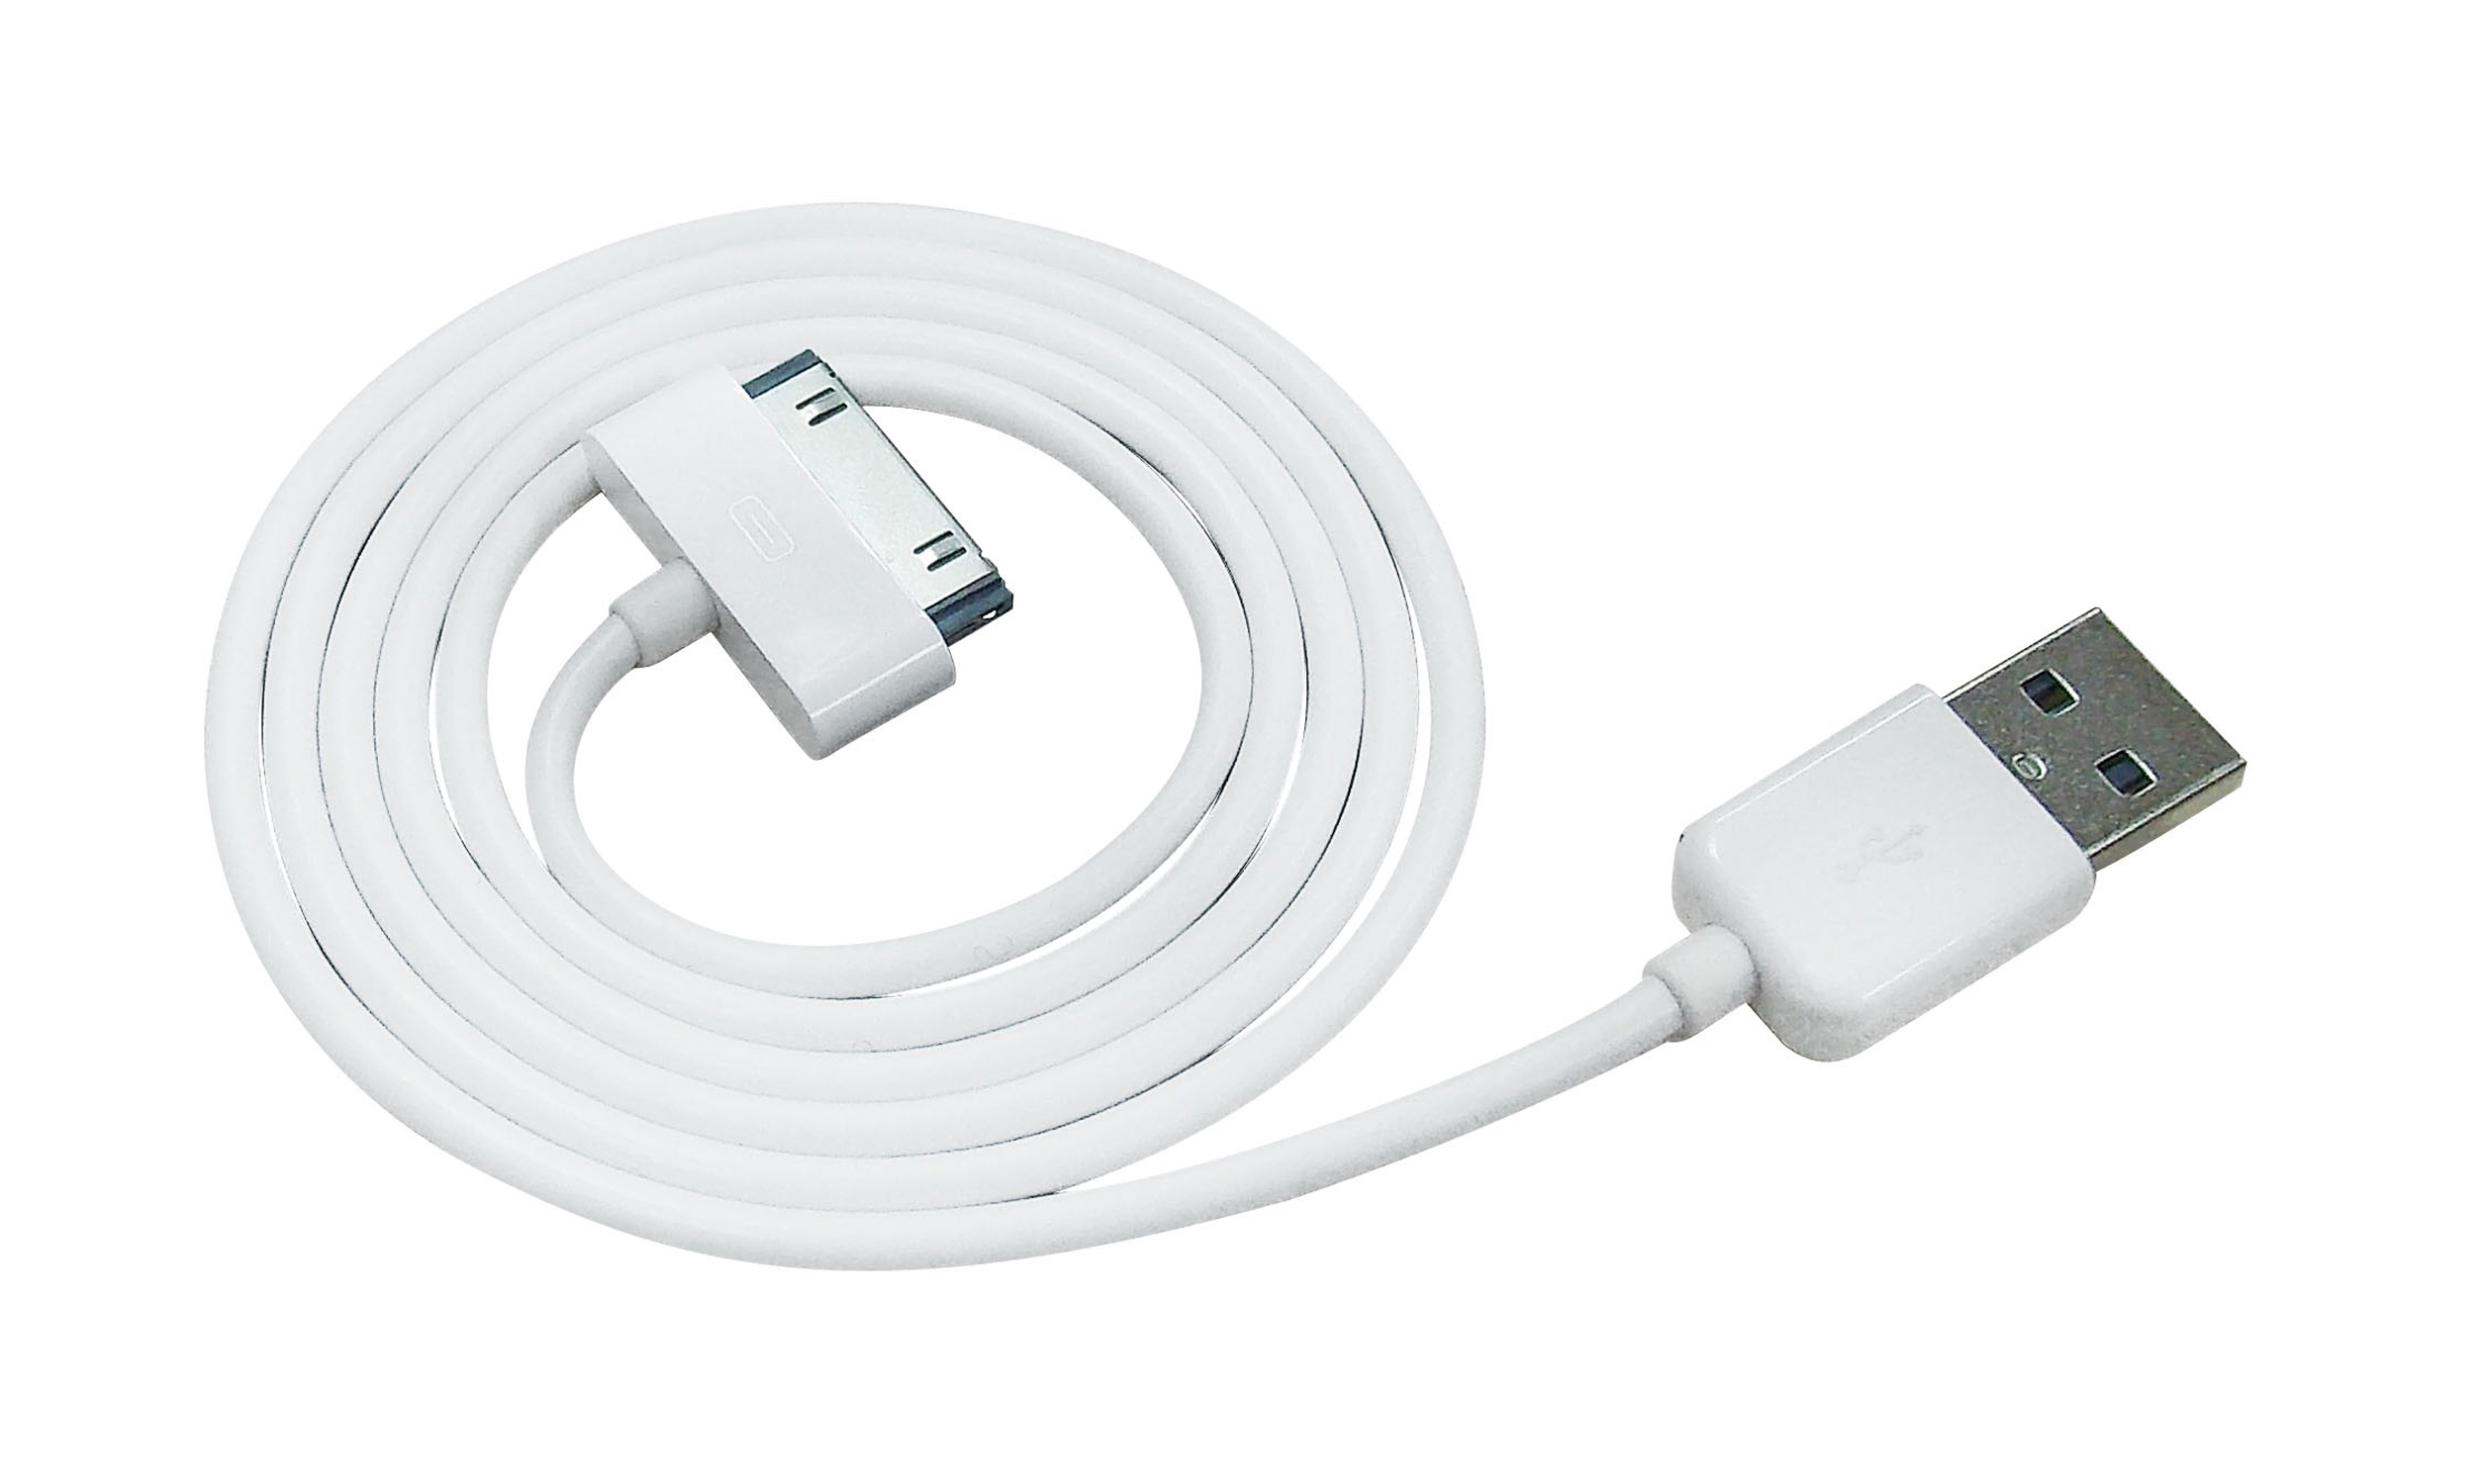 Azuri USB cable - white - for